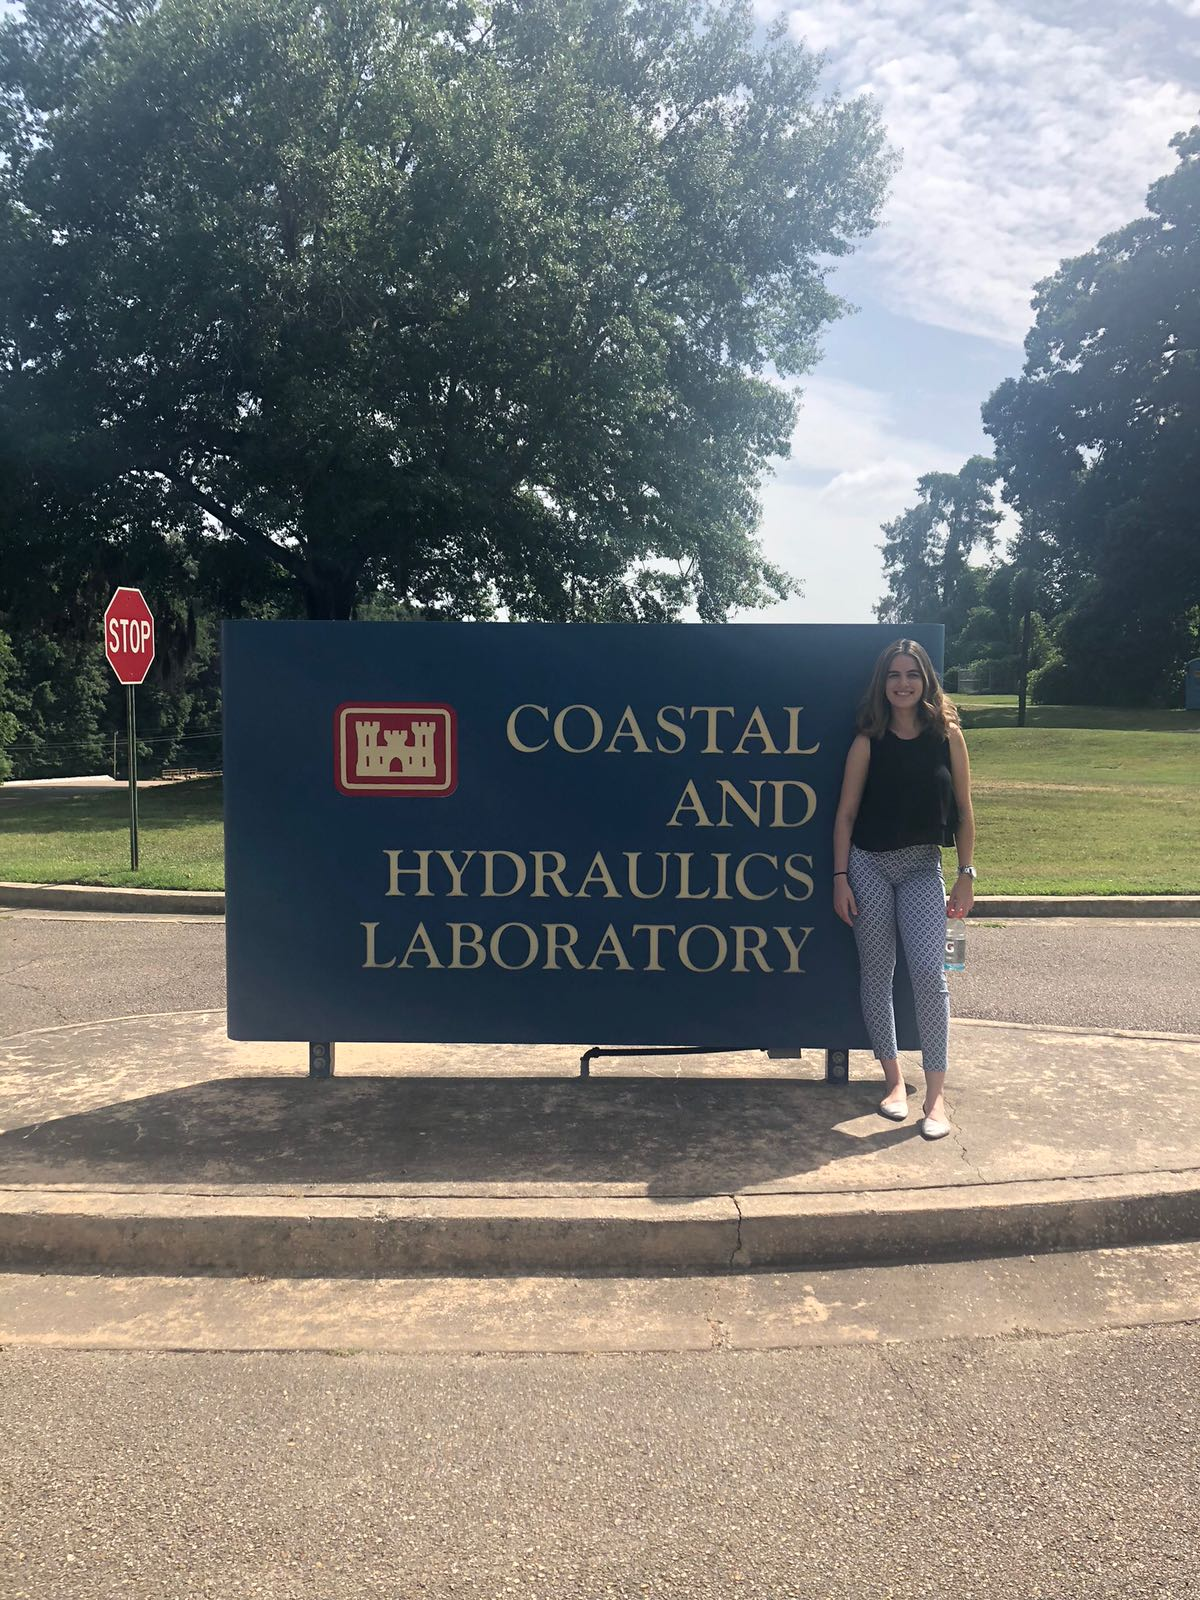 My internship at the U.S Army Corps of Engineers